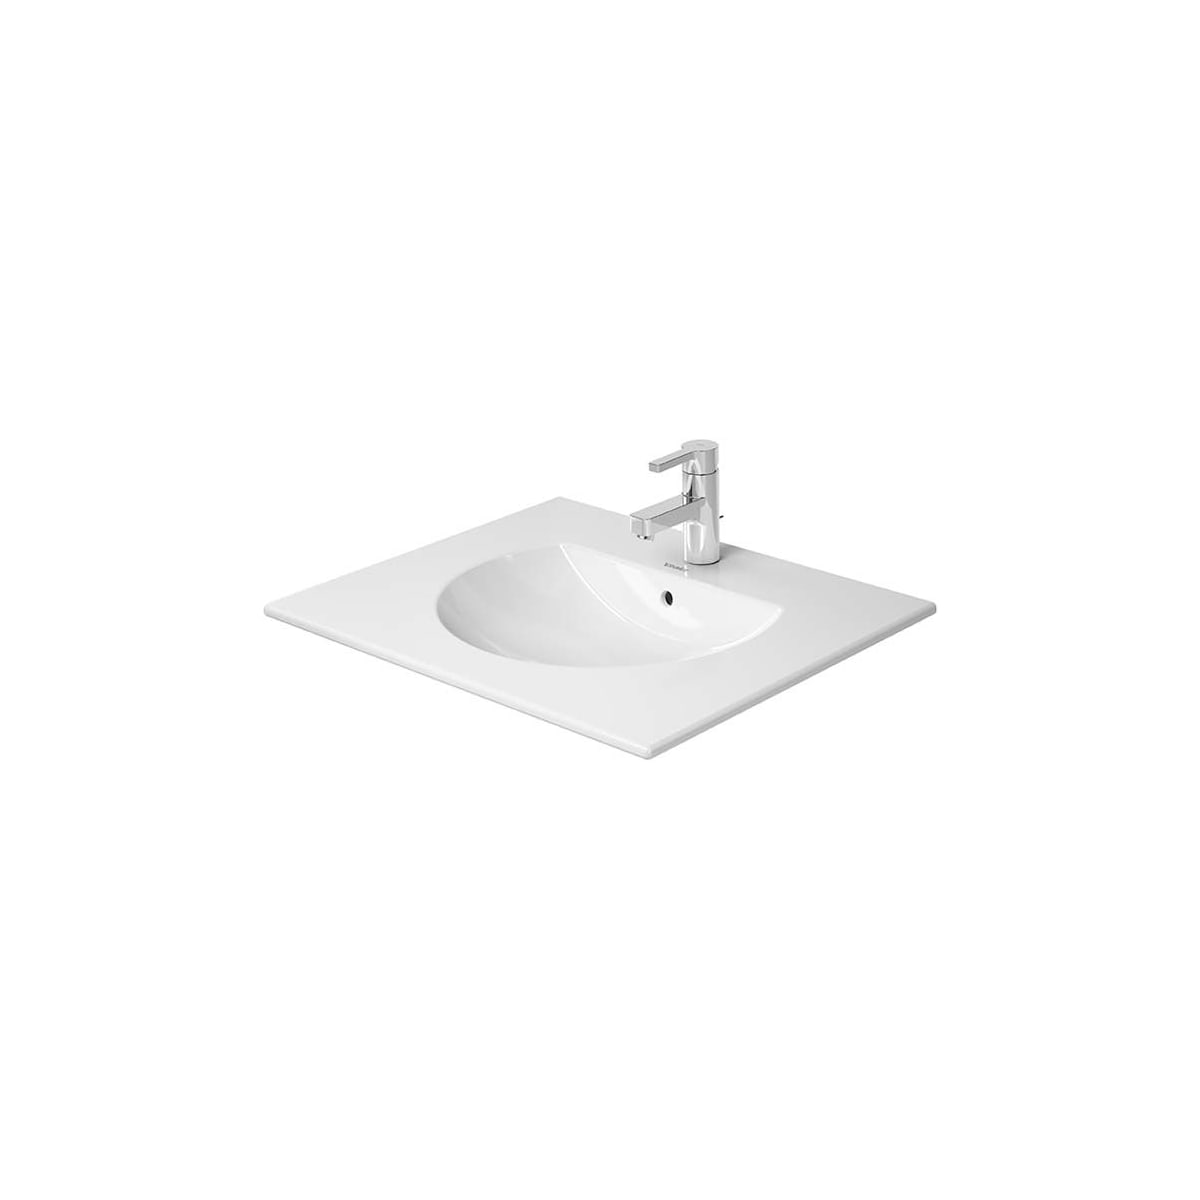 Duravit 0499630000 White Darling New 25 Ceramic Vanity Top With 1 Faucet Hole Faucet Com